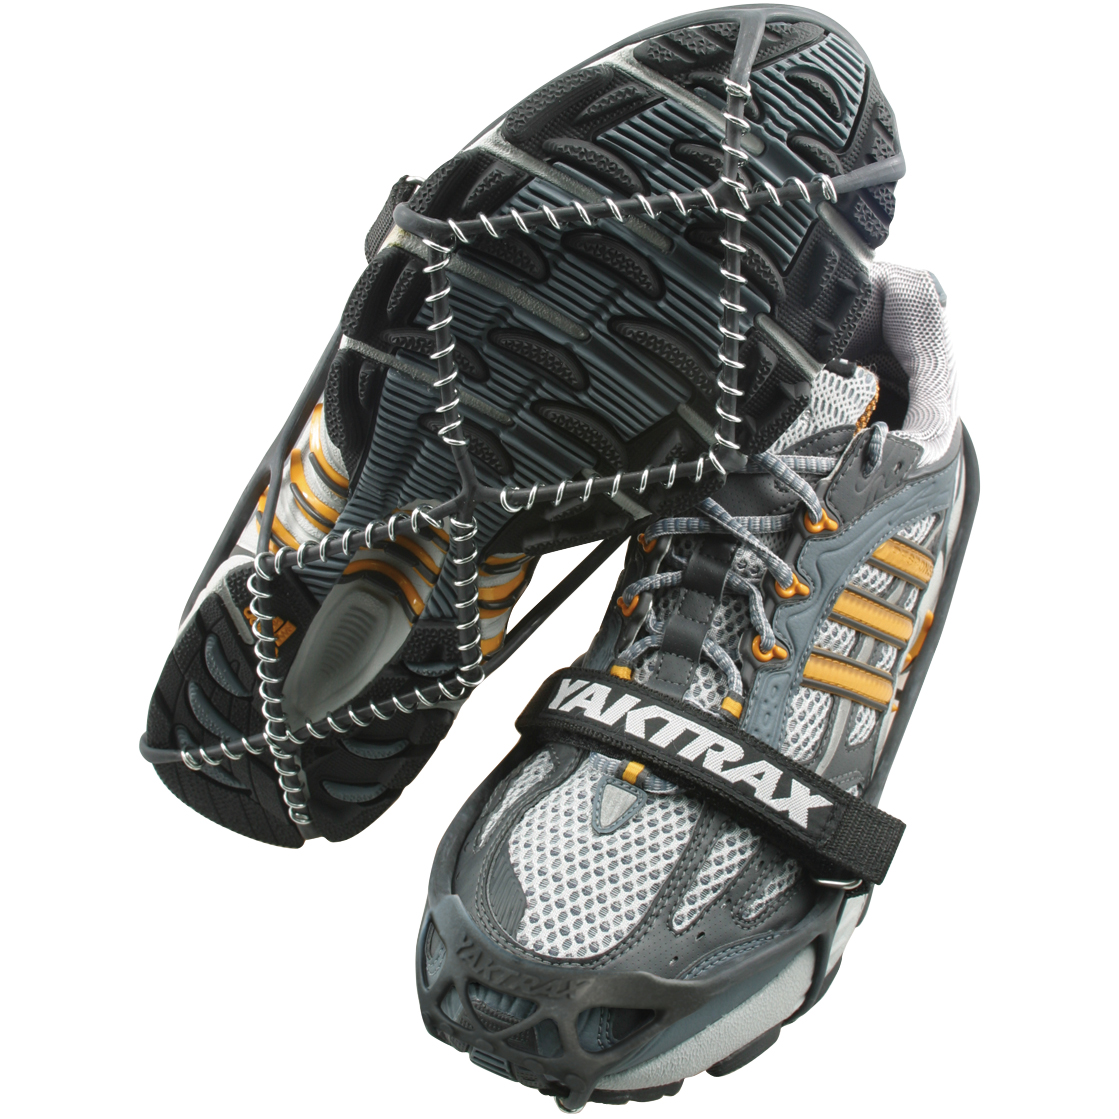 b936ec4ad Yaktrax Pro Traction Device - Unisex